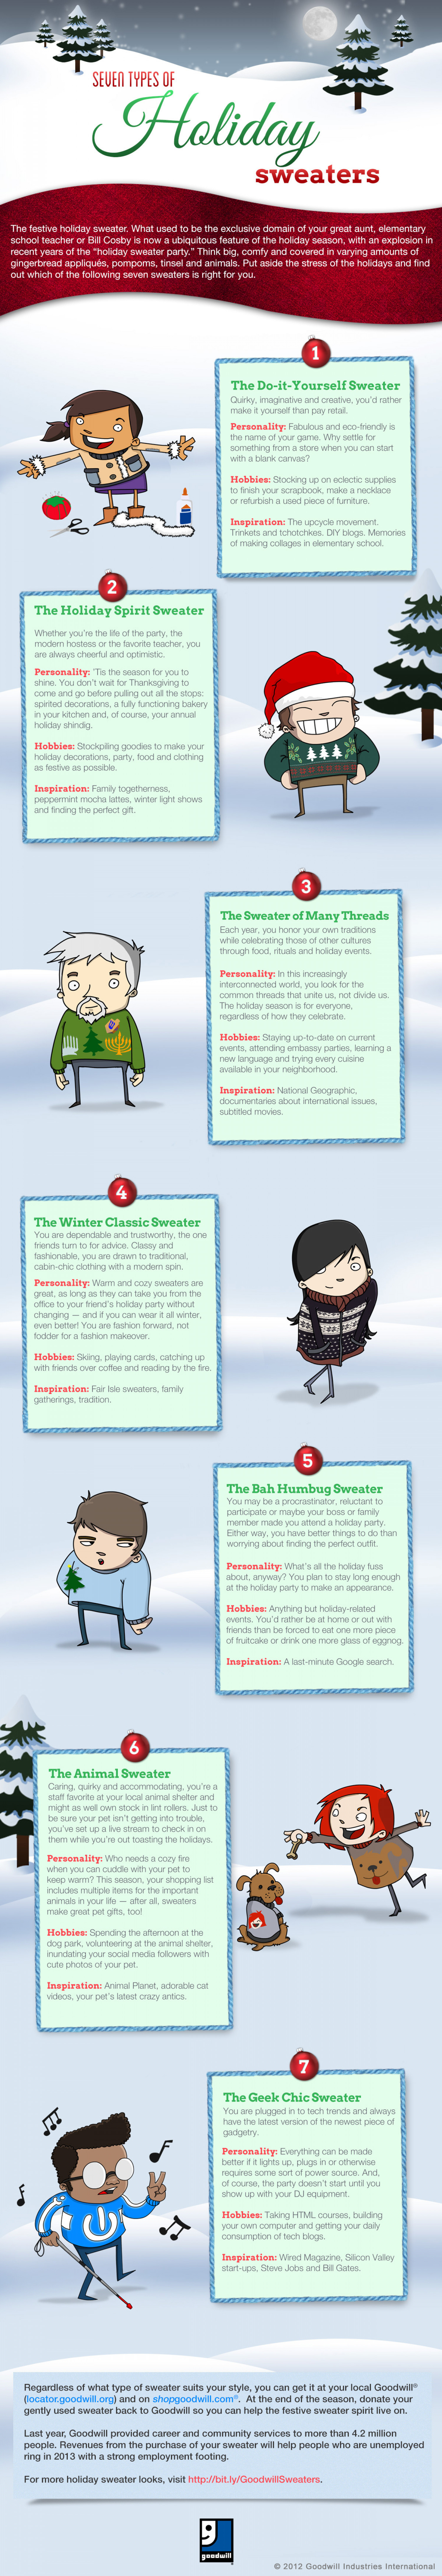 Goodwill's Seven Types of Holiday Sweaters: Which one are you? Infographic